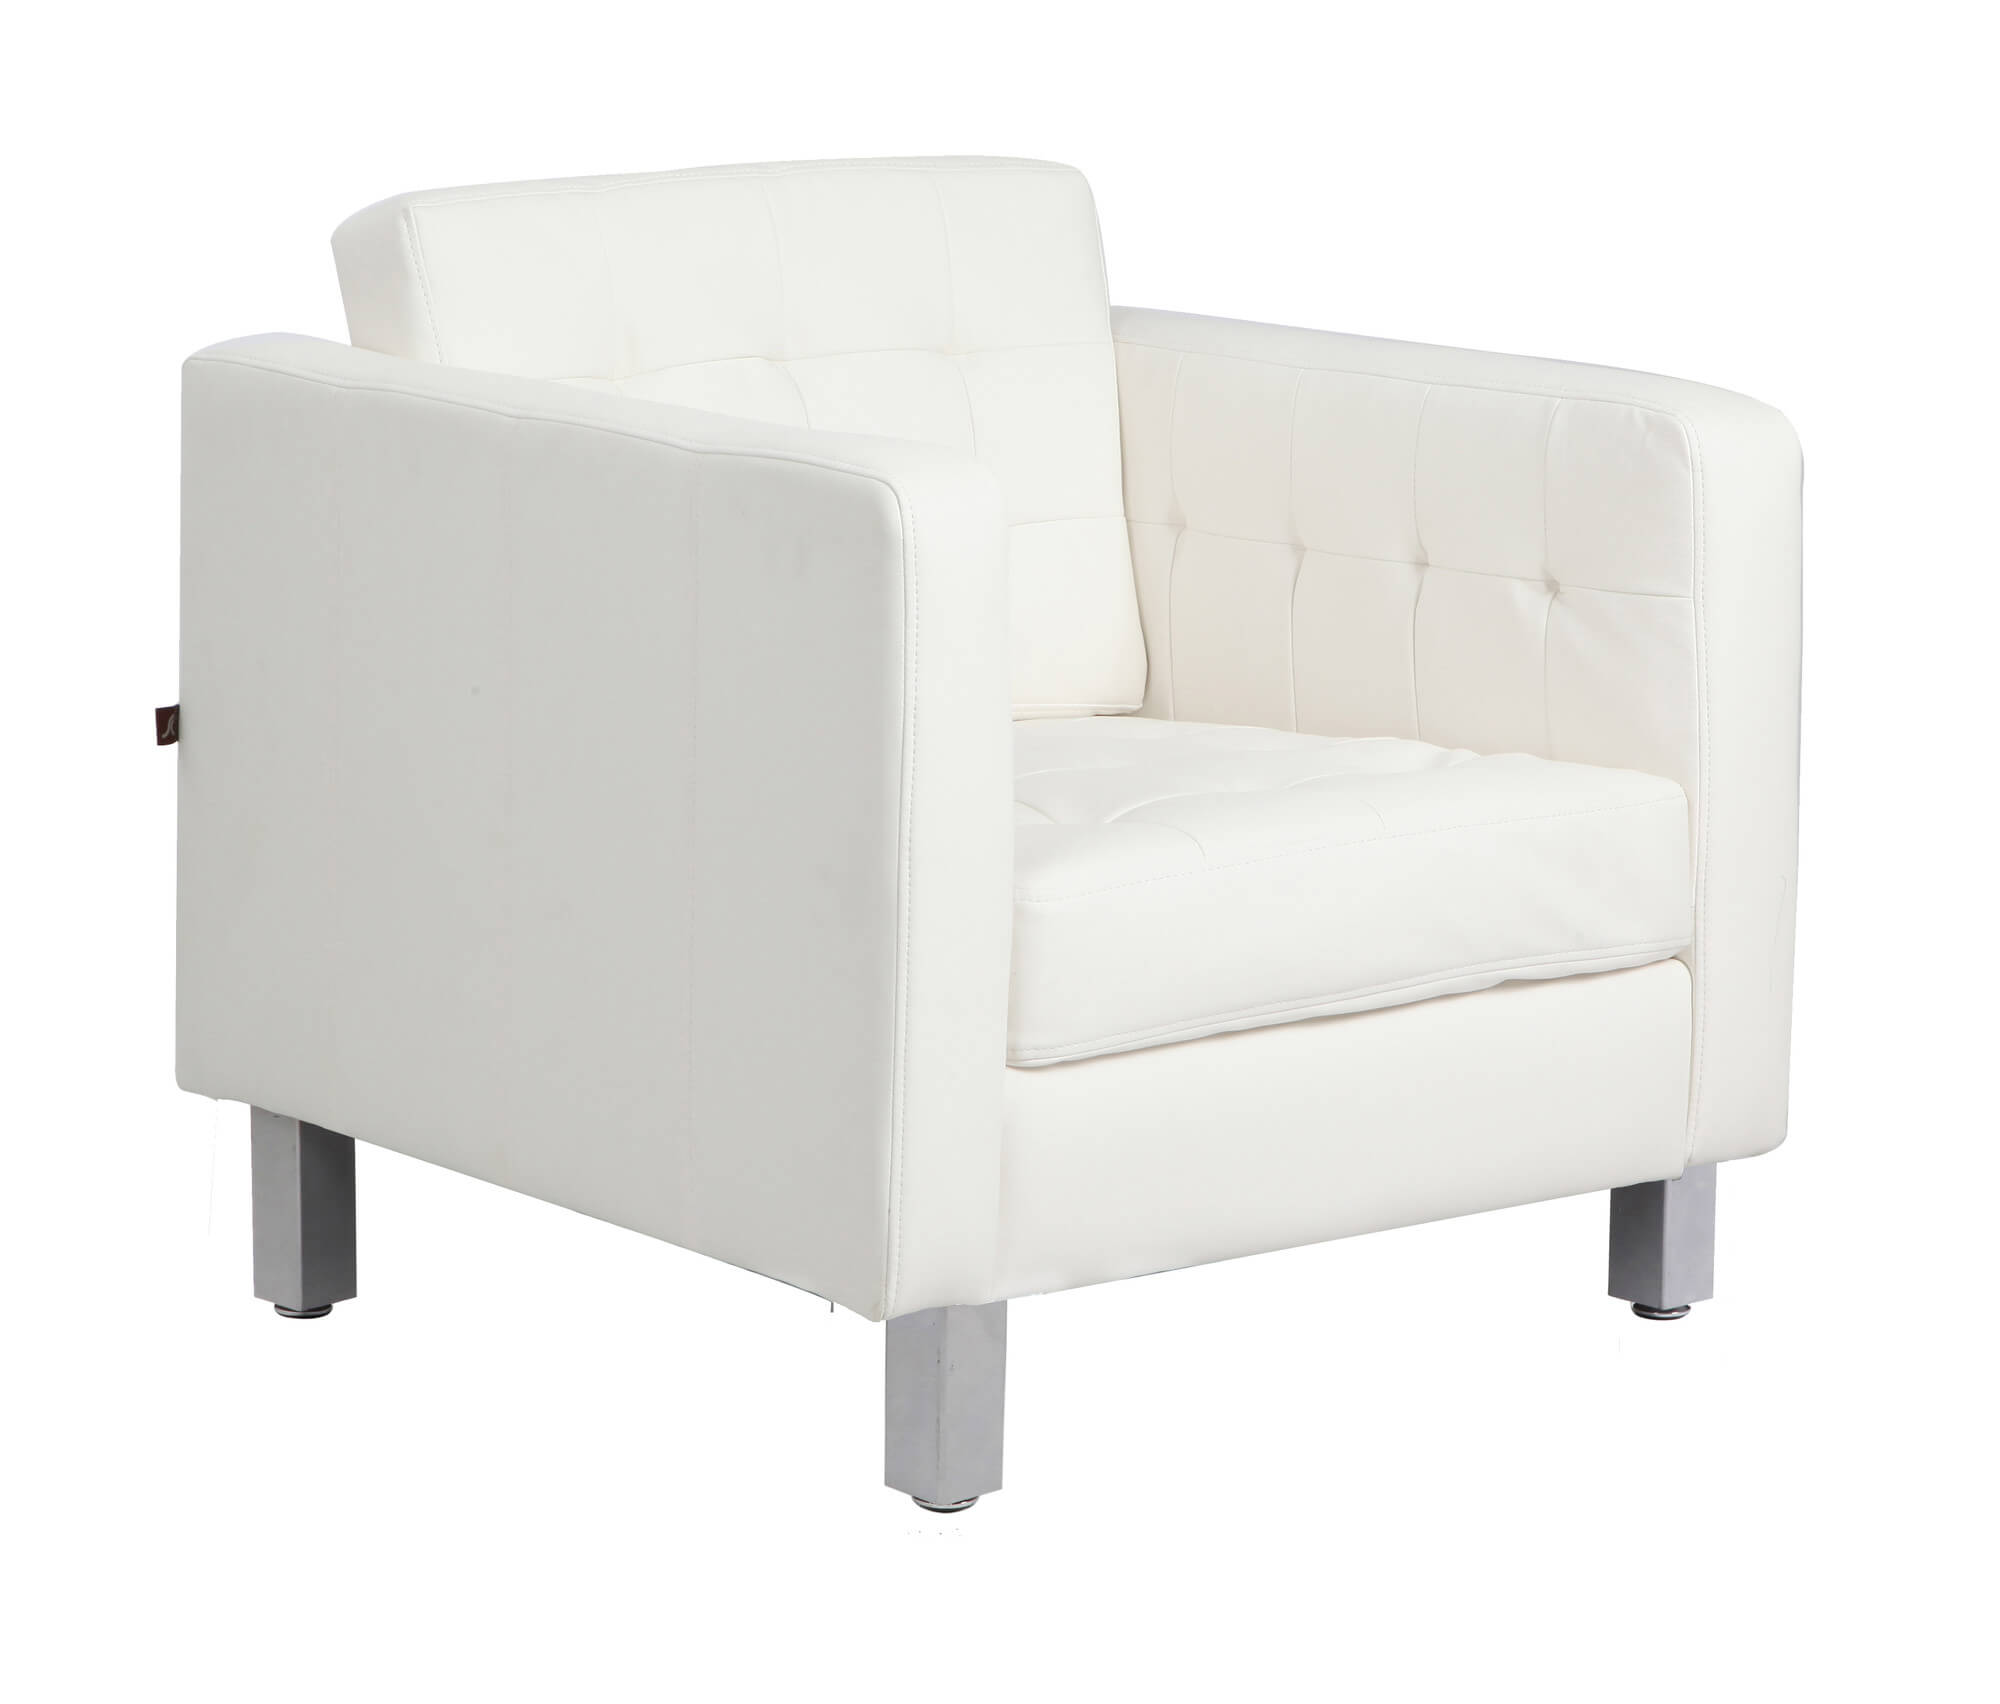 Charmant Hereu0027s Another Club Chair, From Rissanti Is Upholstered In Bonded Leather,  With Spring Seat .